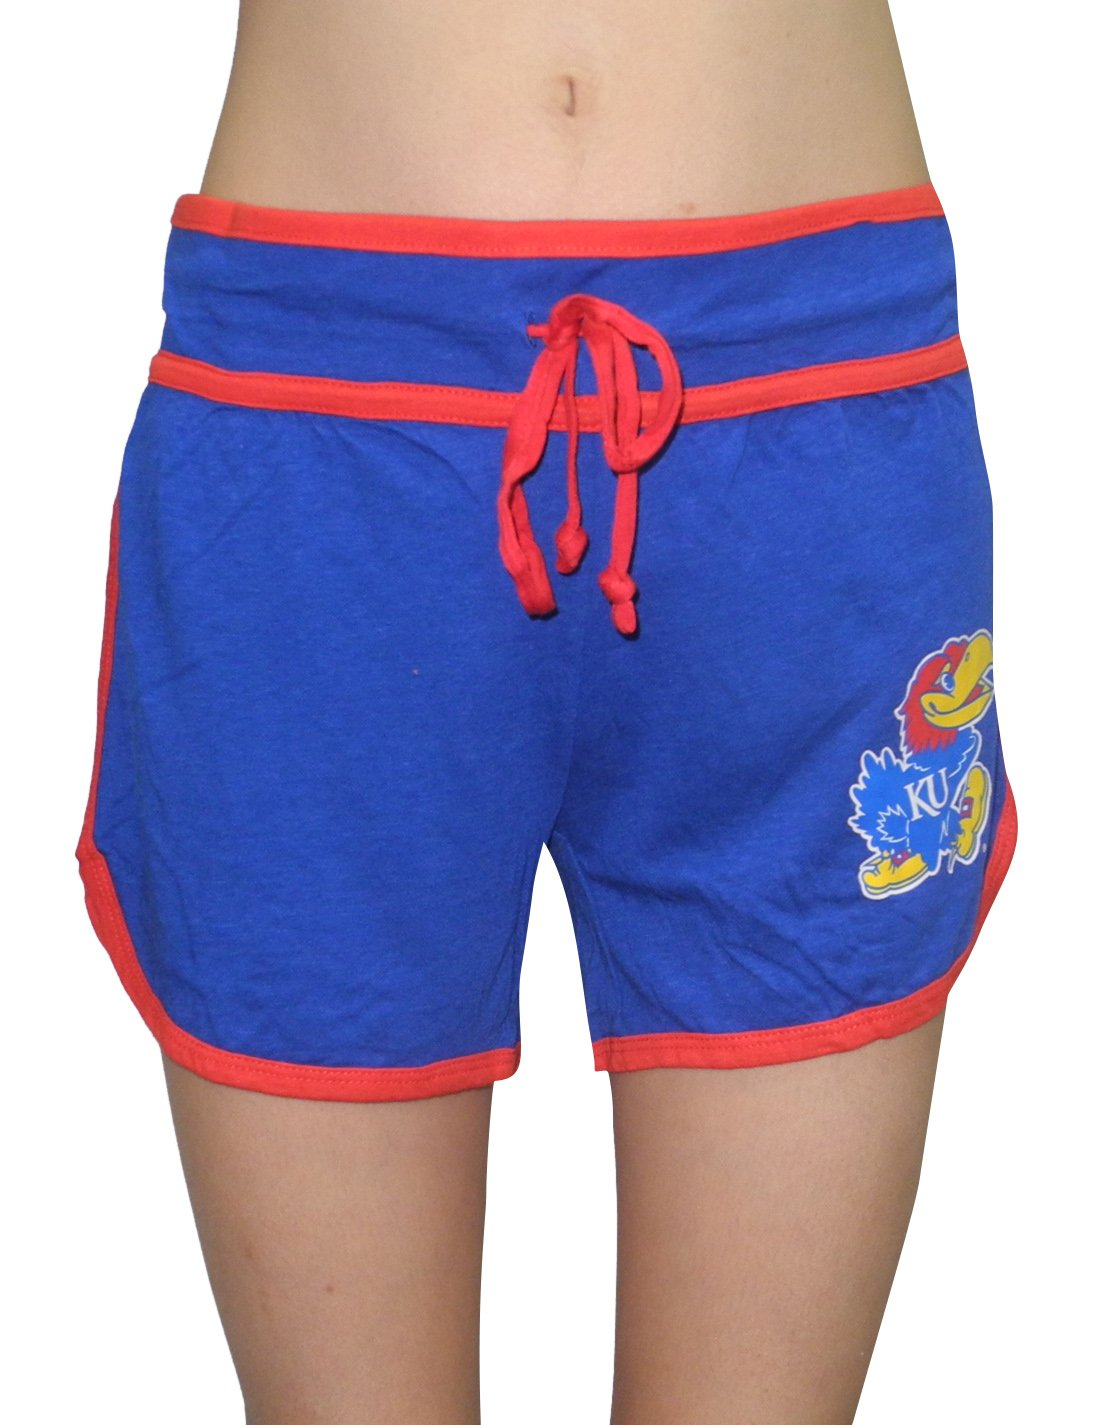 Womens KANSAS JAYHAWKS Running / Athletic Shorts